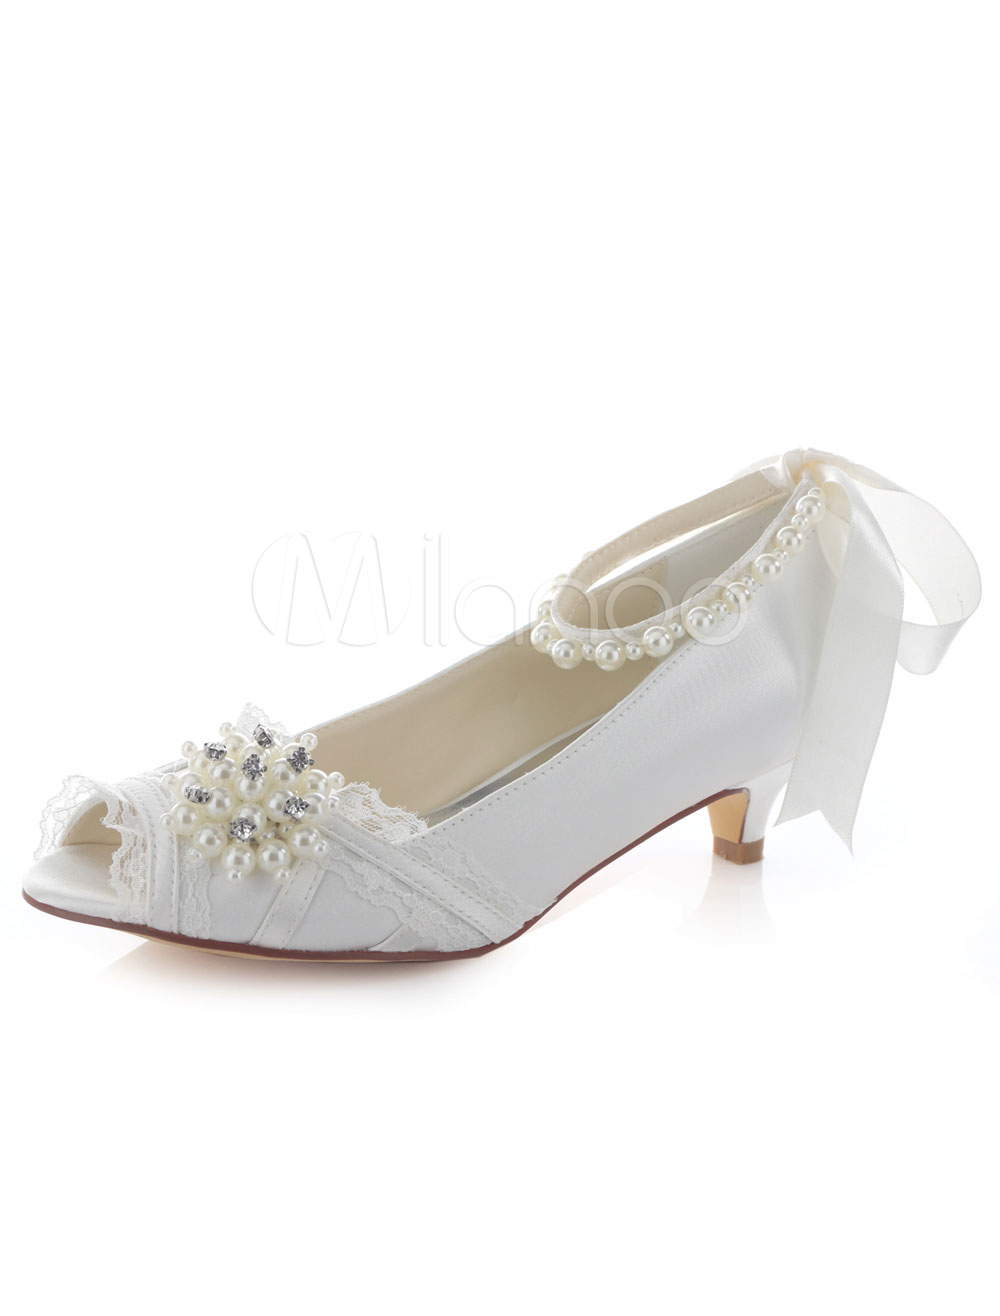 Buy Ivory Wedding Shoes Peep Toe Bow Pearl Slip On Ankle Strap Kitten Heel Bridal Shoes for $55.09 in Milanoo store